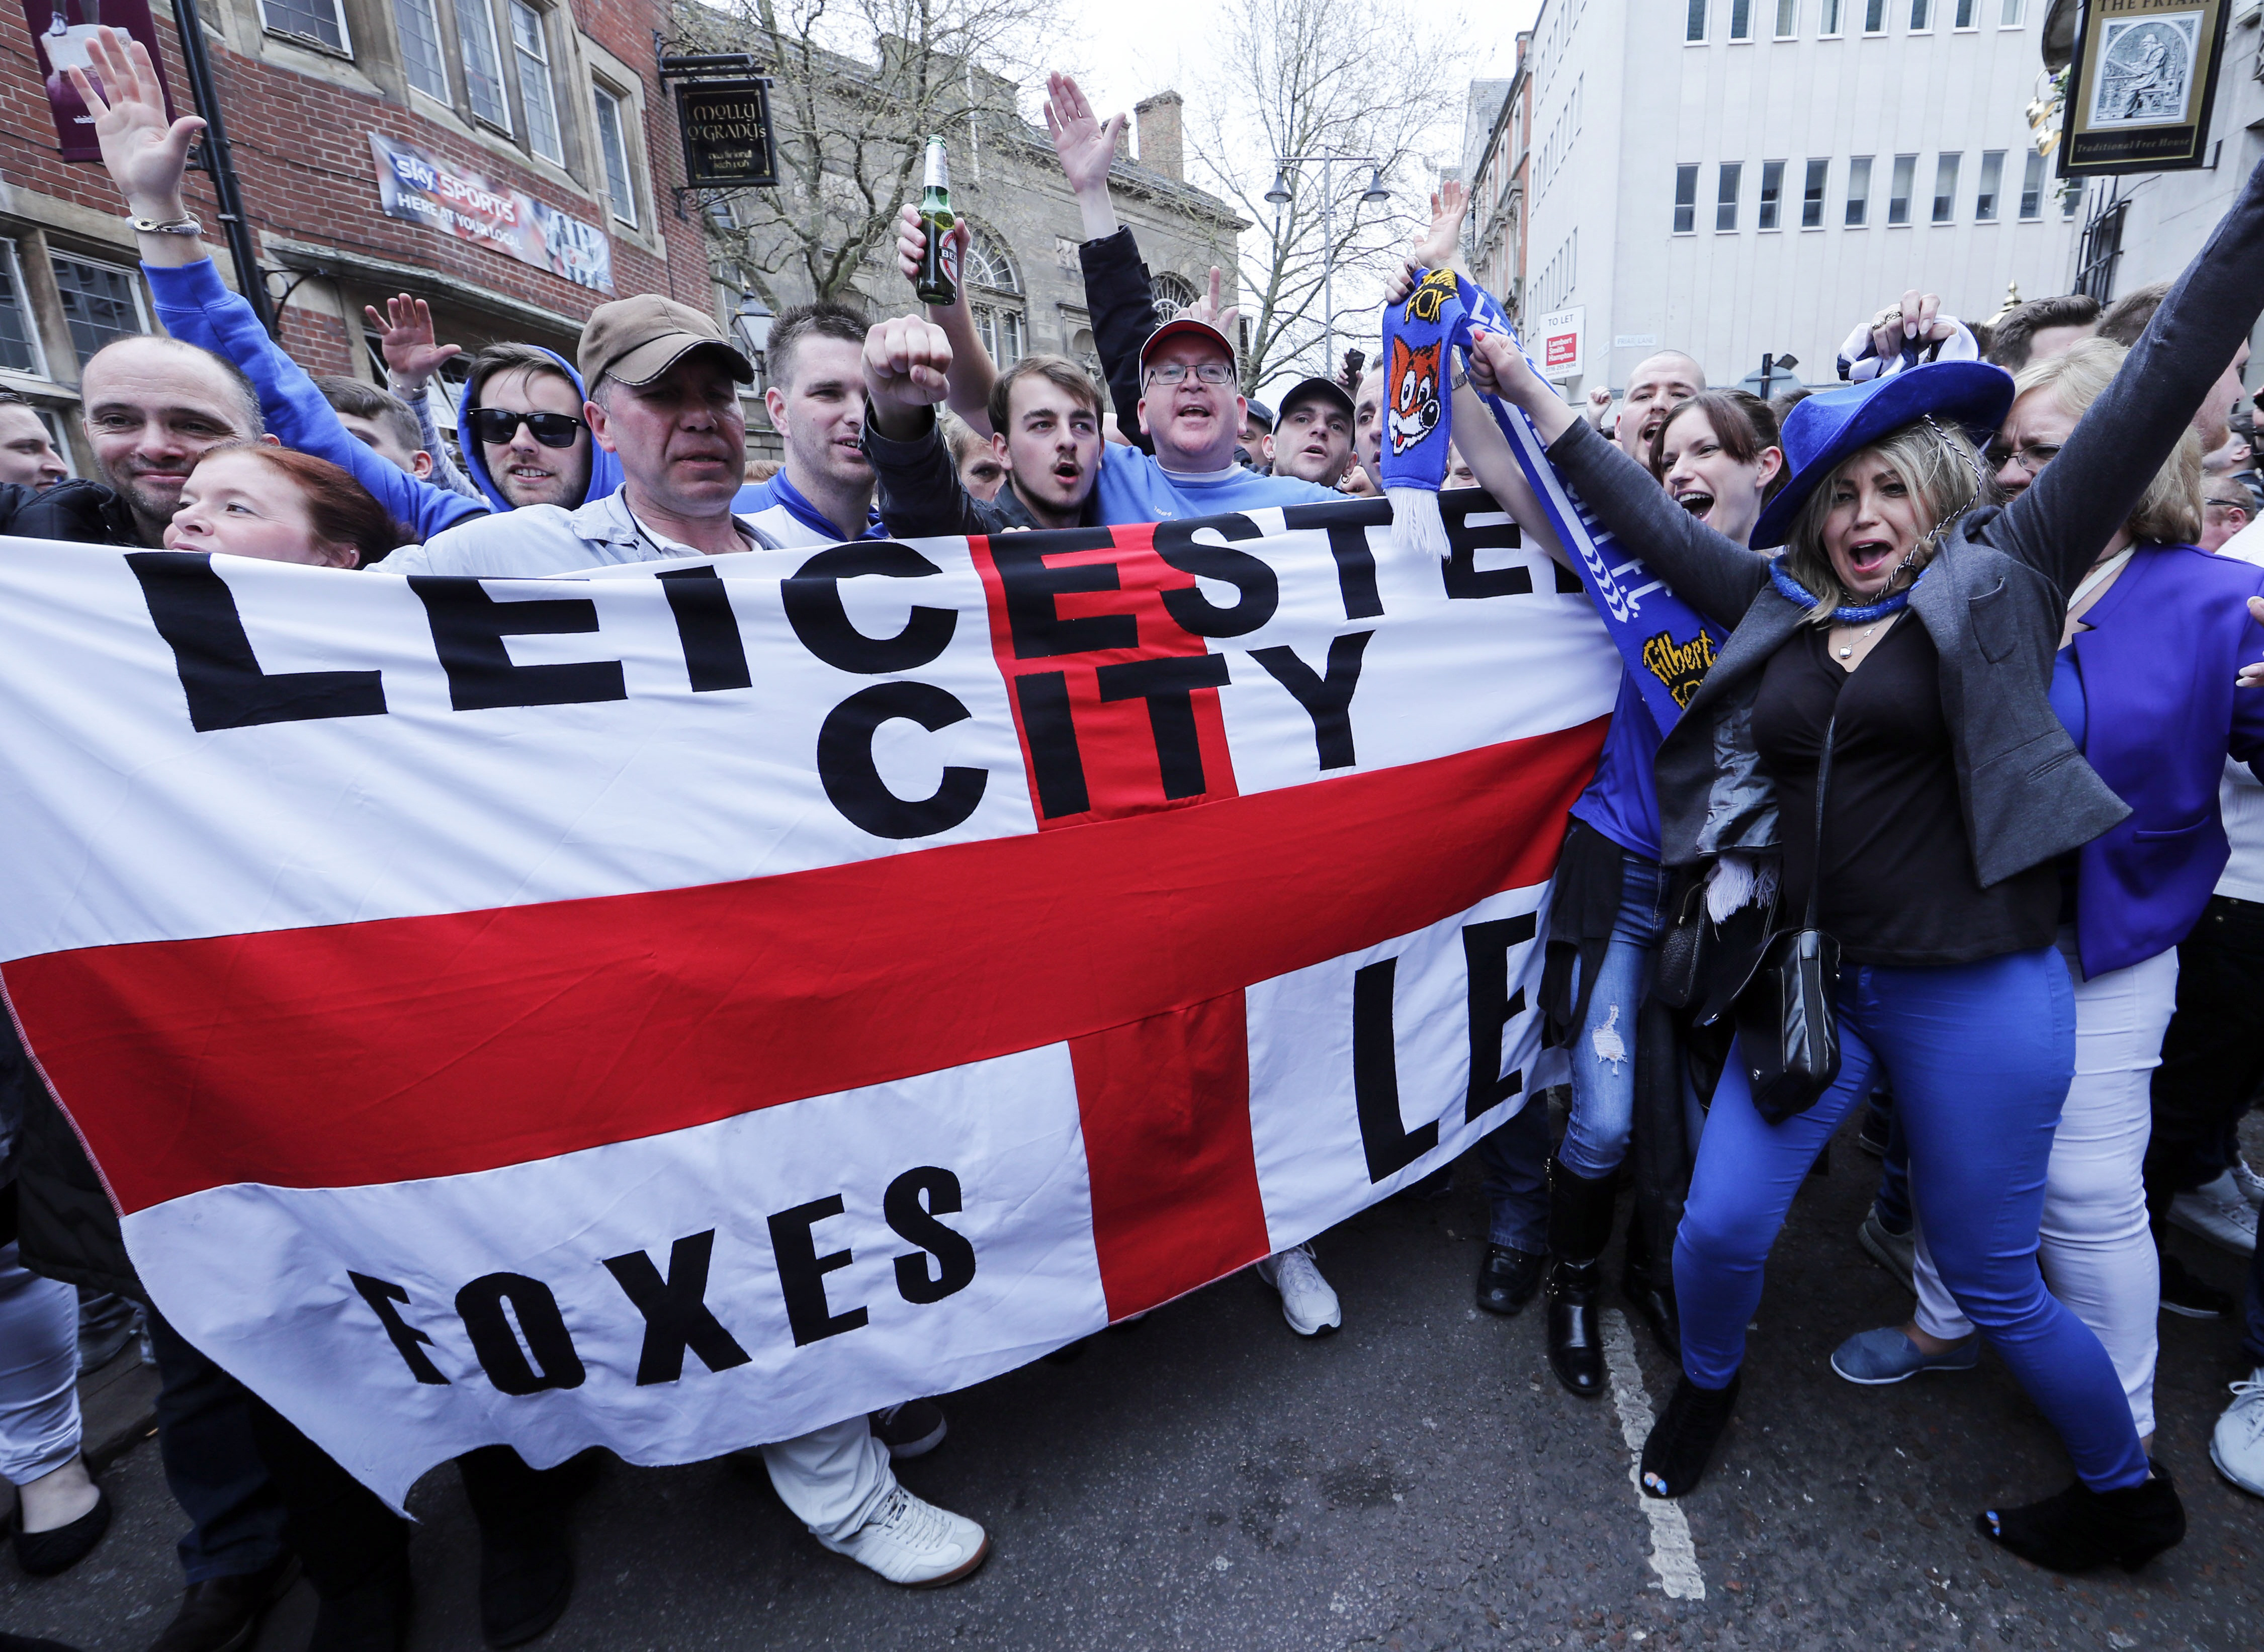 Leicester City fans celebrate in the street after their team's away soccer match against Manchester United, outside Hogarth's pub in Leicester